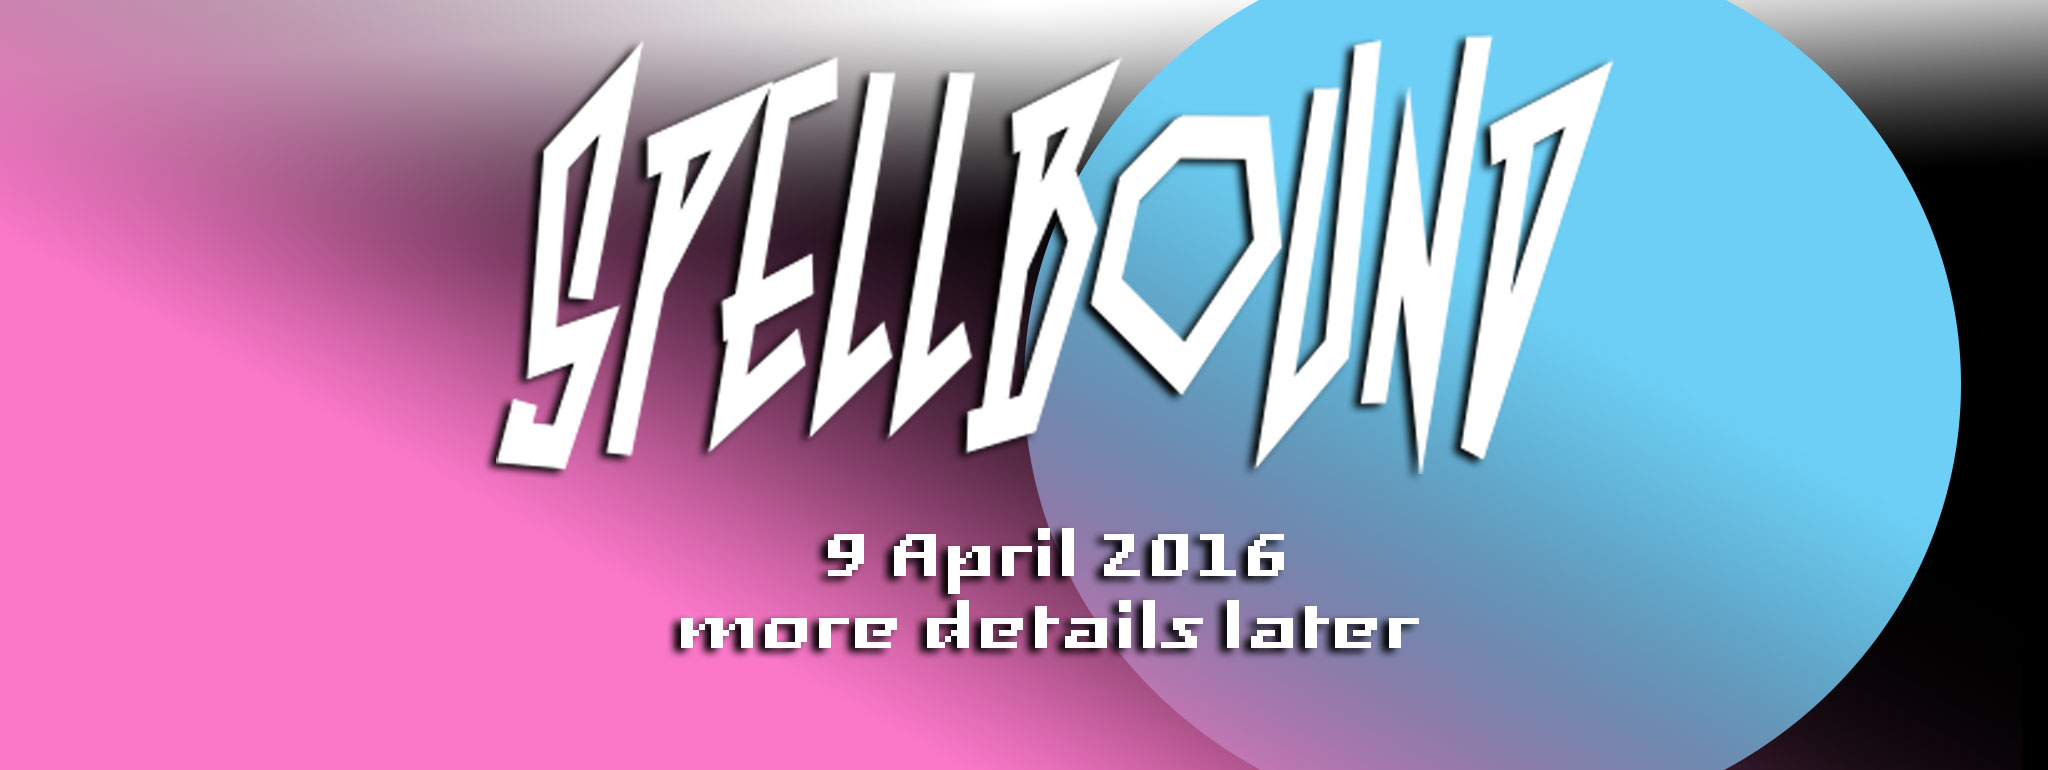 SPELLBOUND DJ's + Live performance: ELECTROSEXUAL (Berlin)